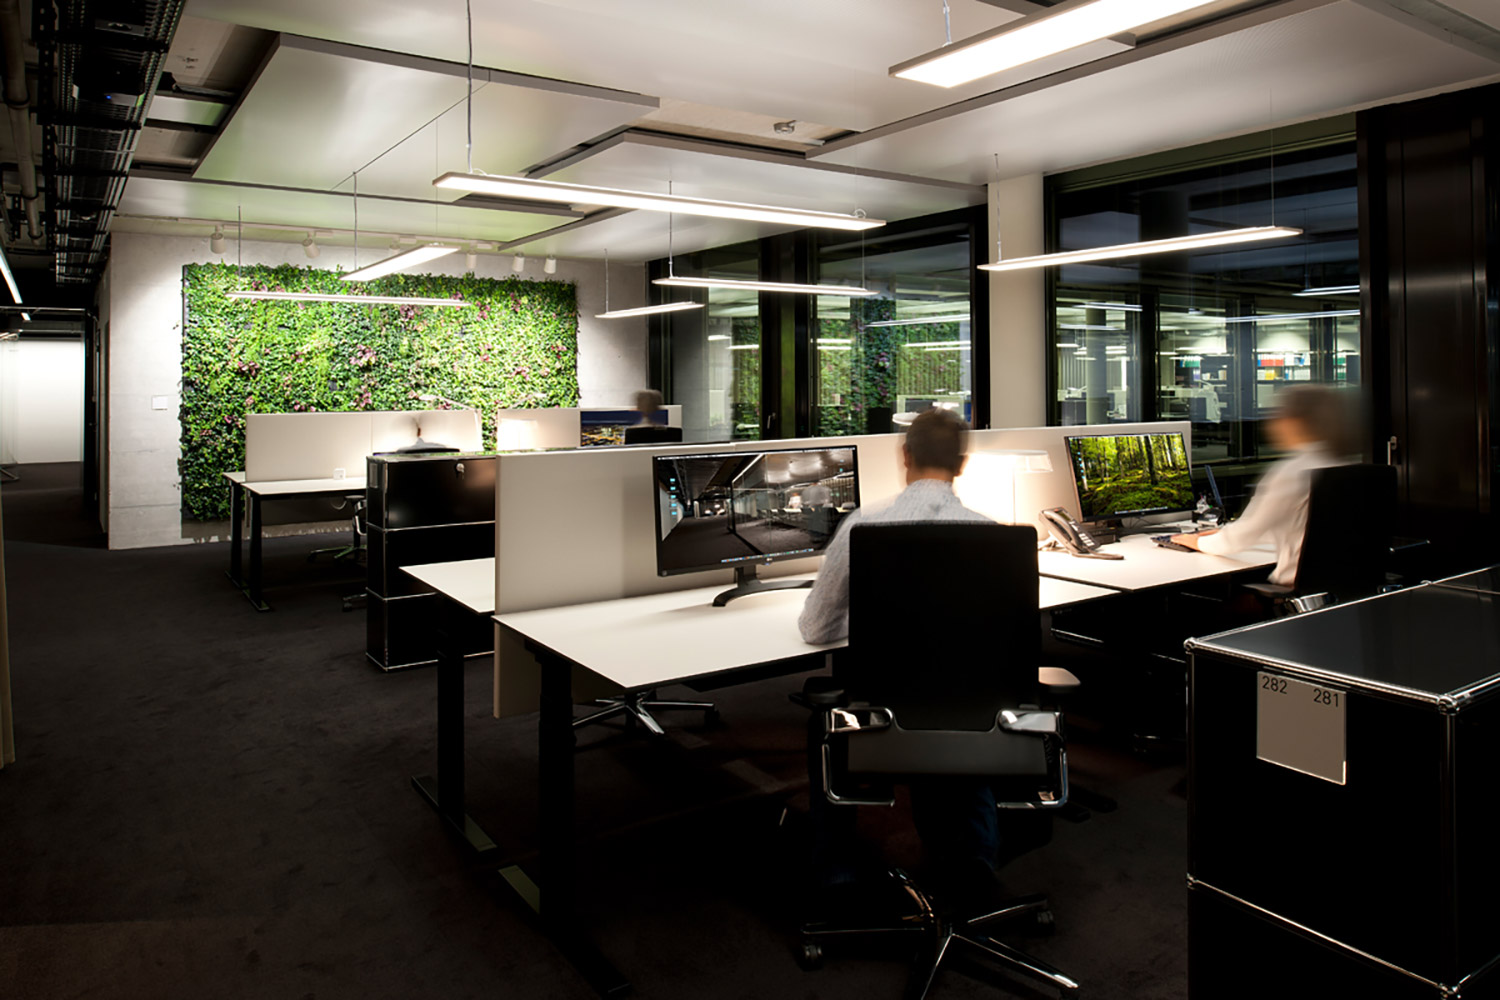 Archiect Nadja Zürcher comissioned WSDG to do acoustic consulting, treatments and A/V integration for the conference, meeting and huddle rooms for a top Zurich Firm. Corporate Europe Project. Open desk space.